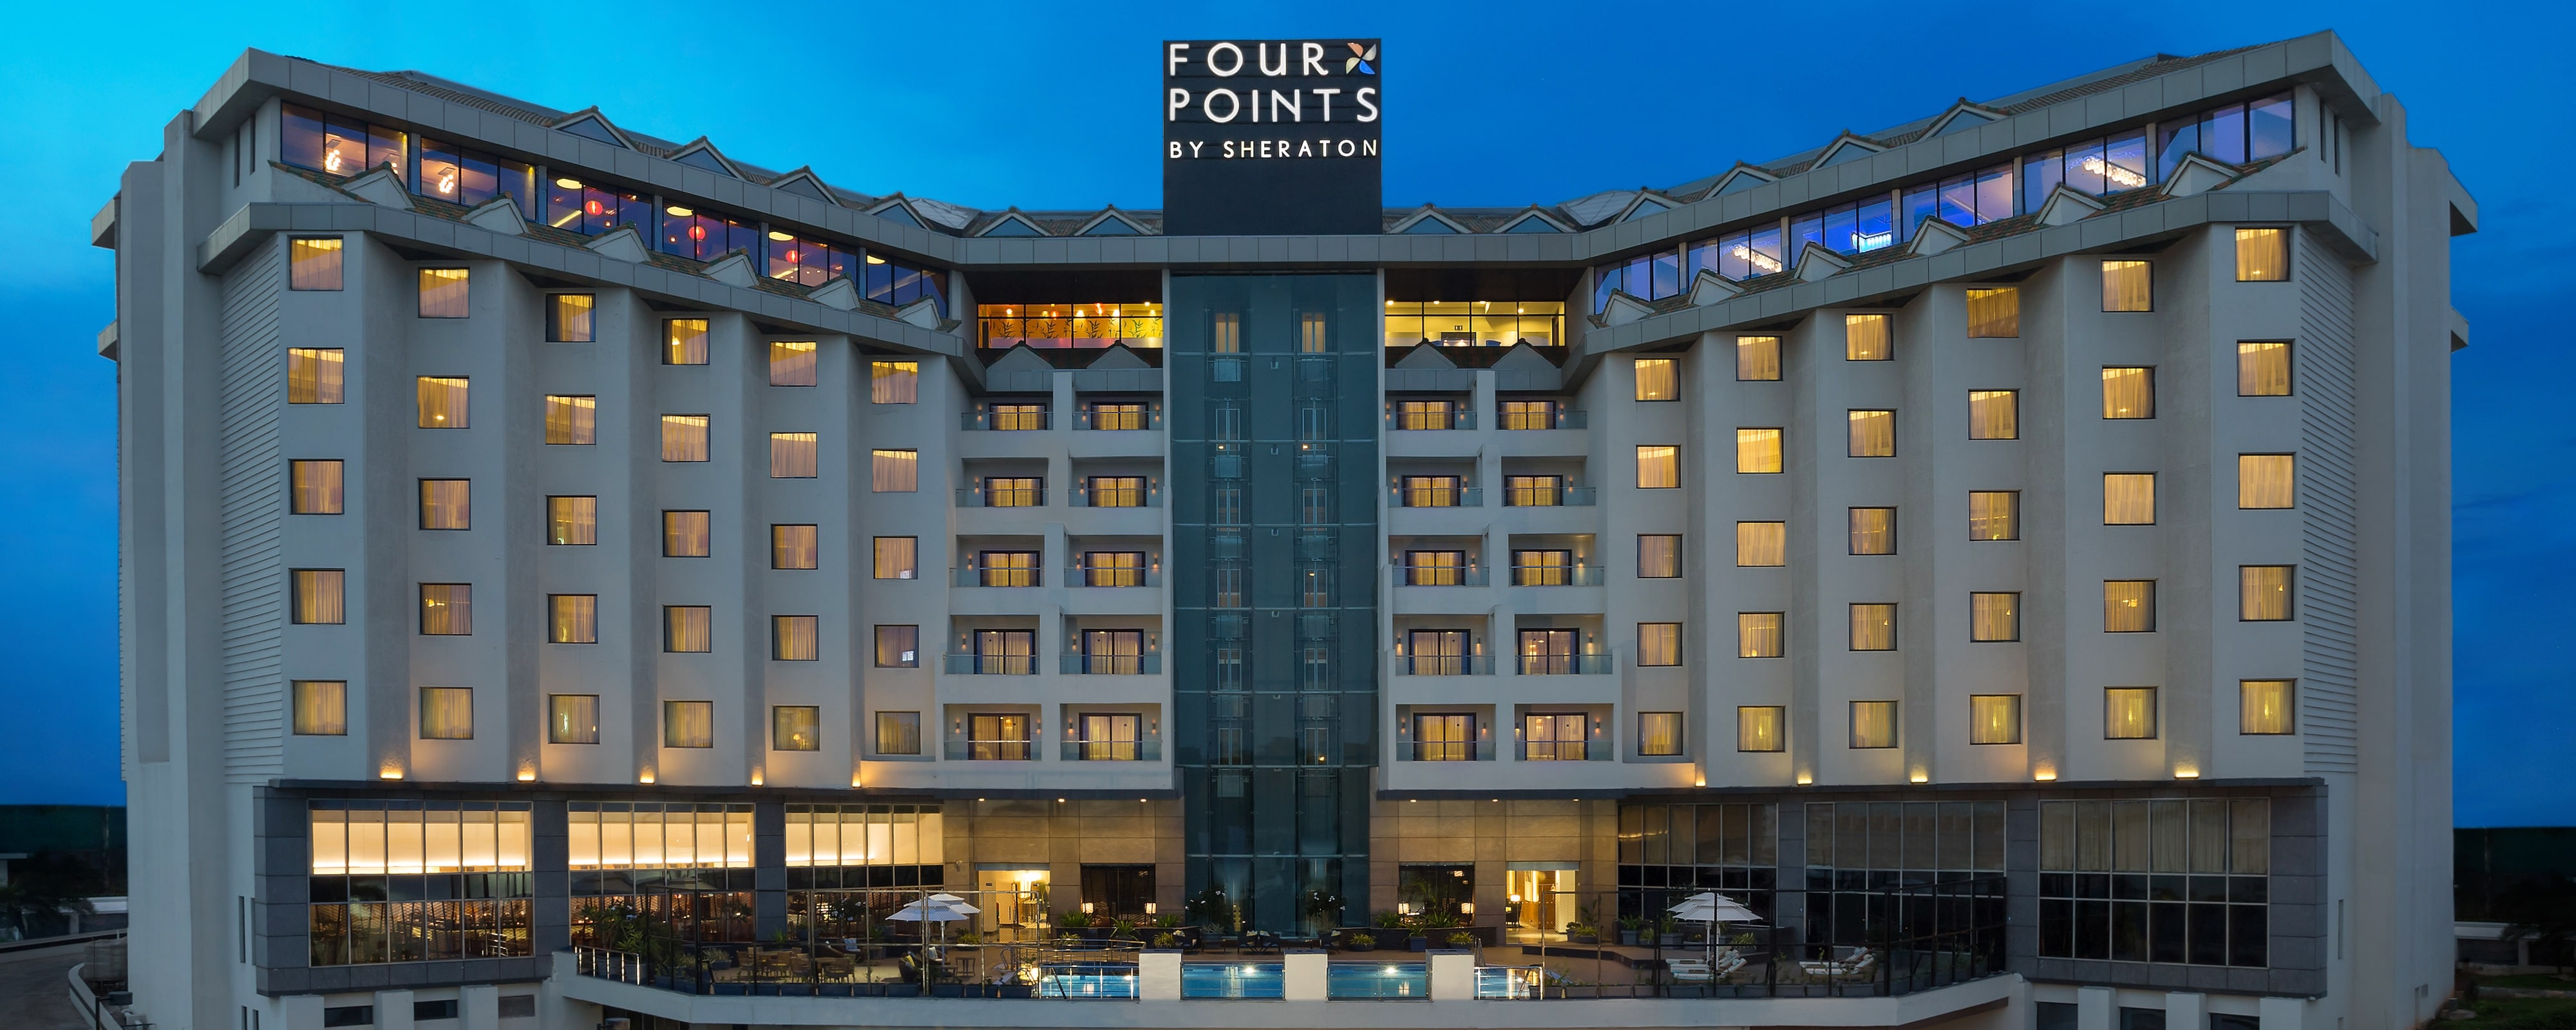 Rk Beach Hotel In Visakhapatnam India Four Points By